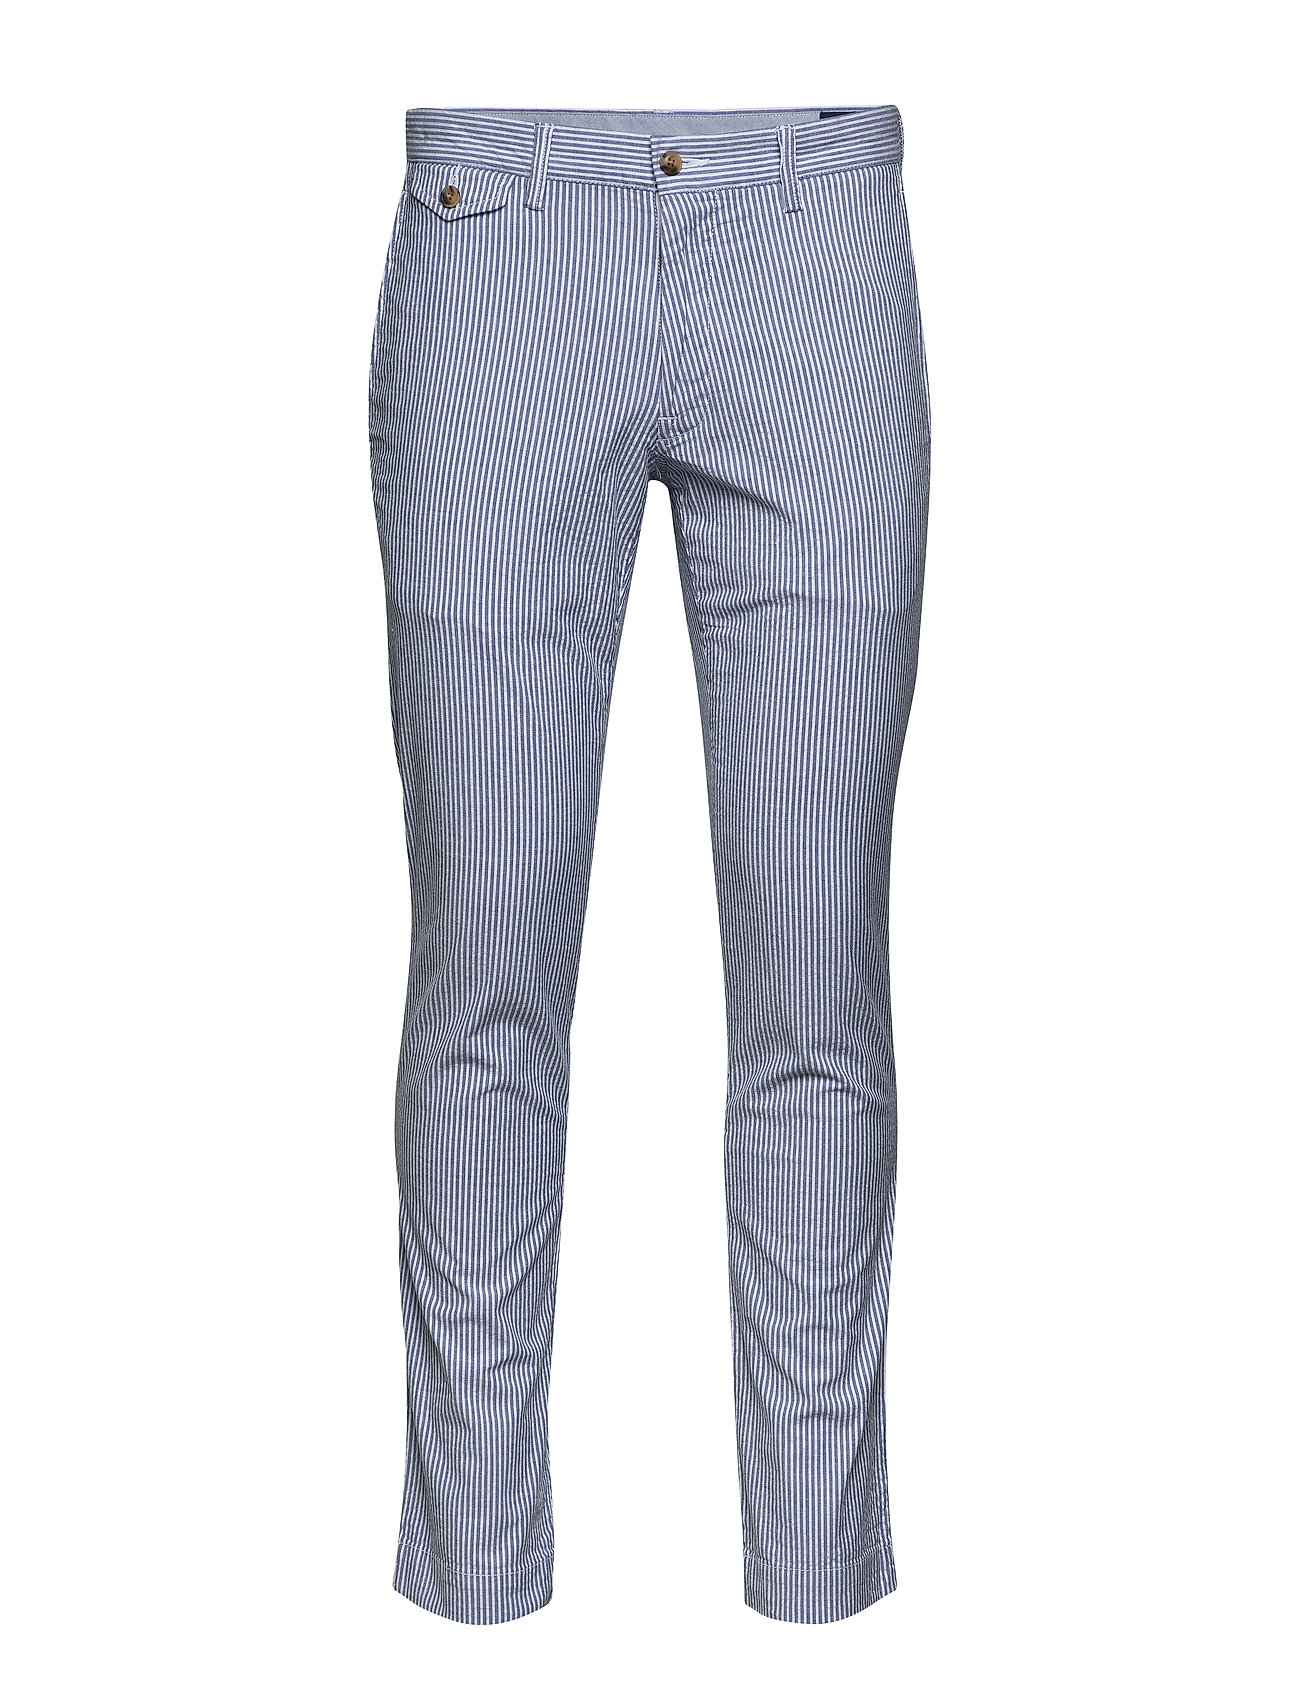 Polo Ralph Lauren SLIM FIT BEDFORD PANT - BLUE/WHITE SEERSU